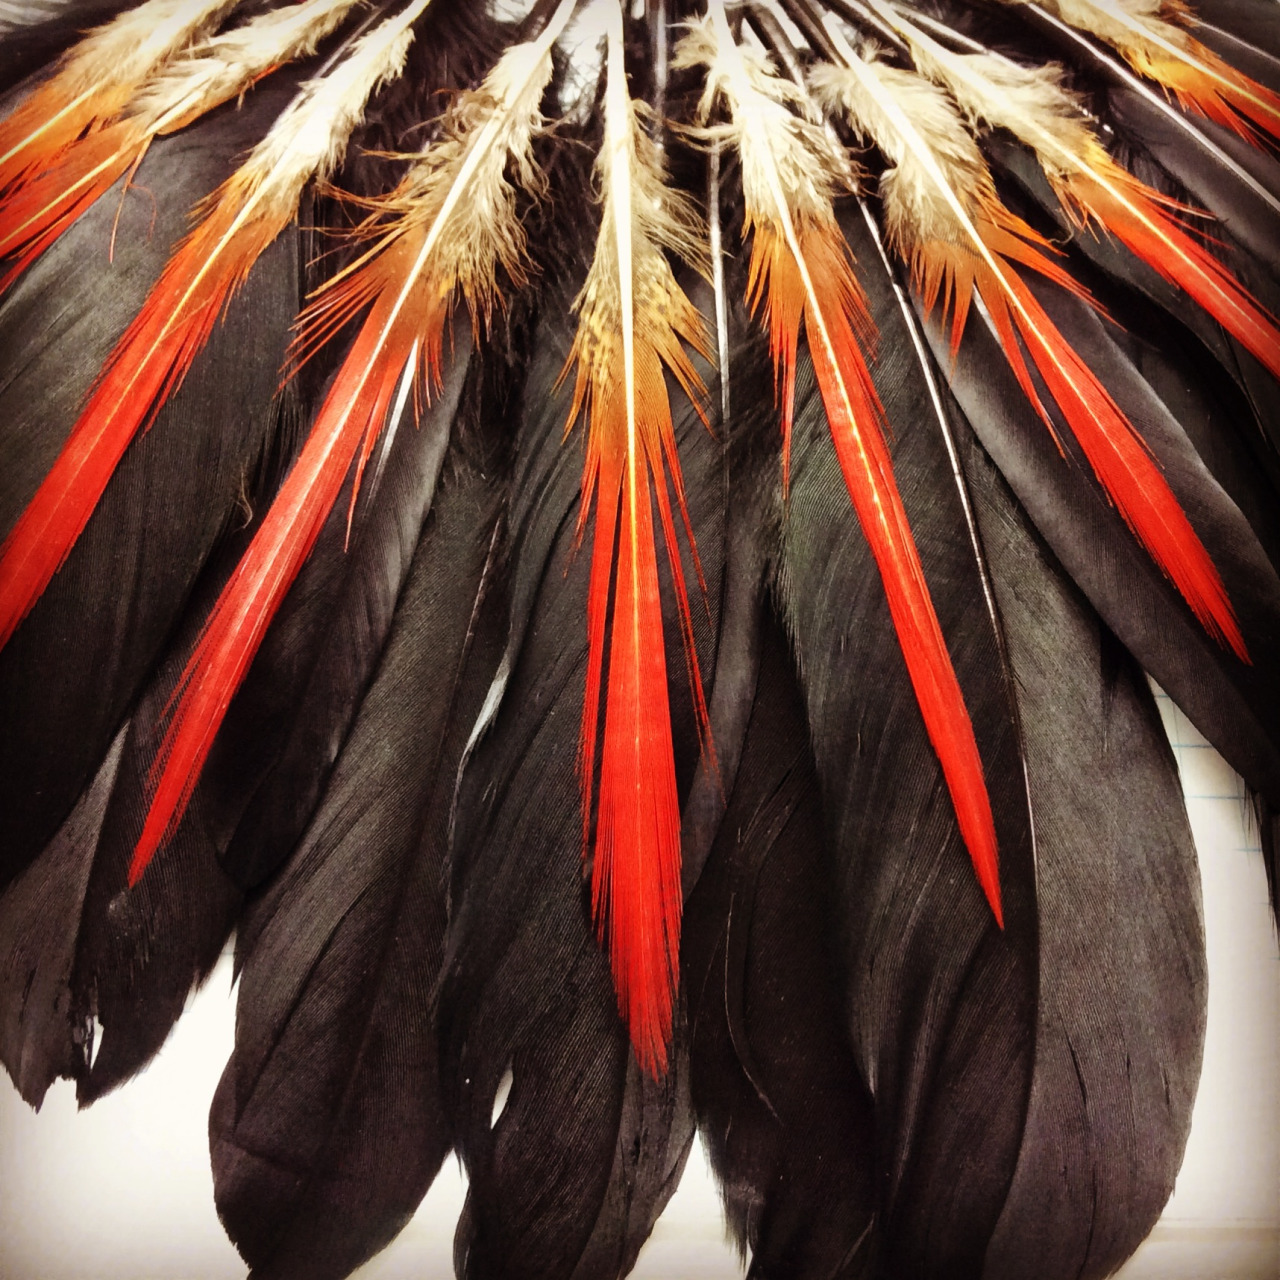 Playing around with a feather arrangement for a necklace I'm working on.